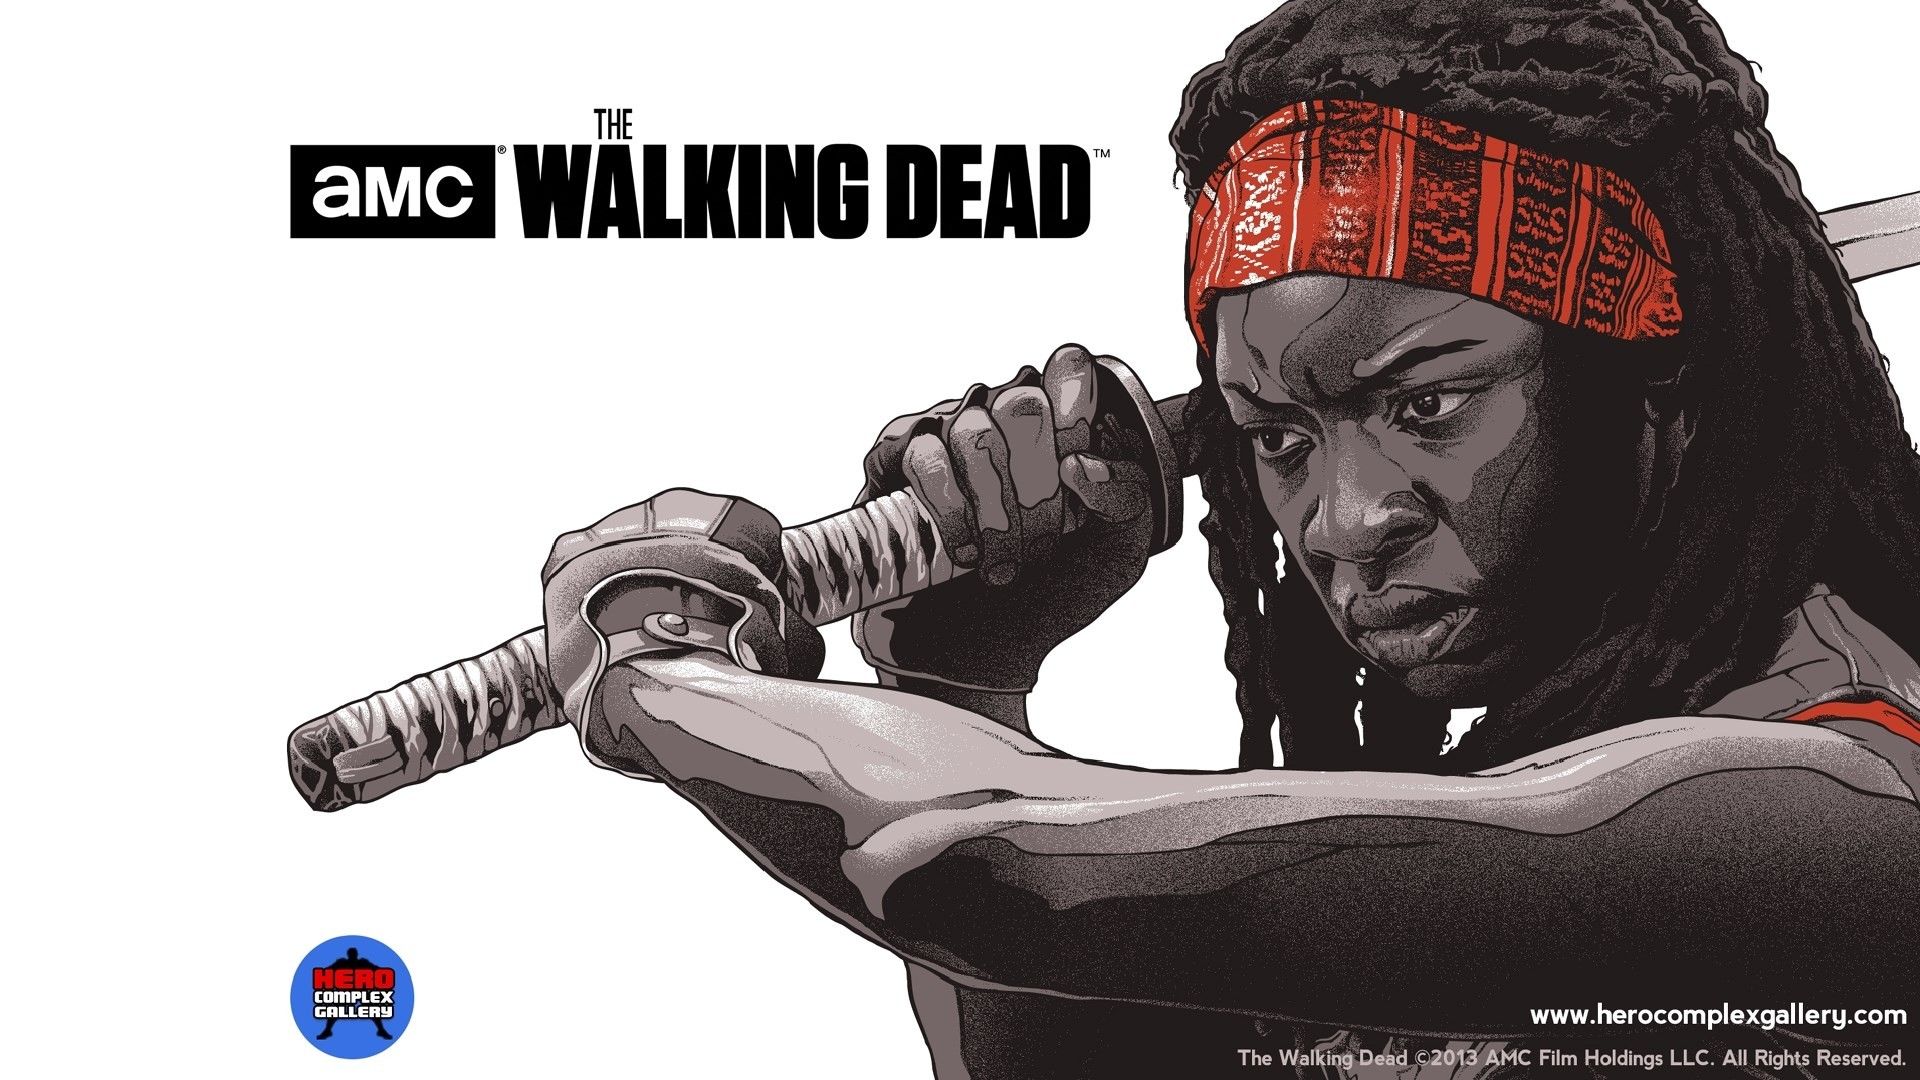 free screensaver wallpapers for the walking dead